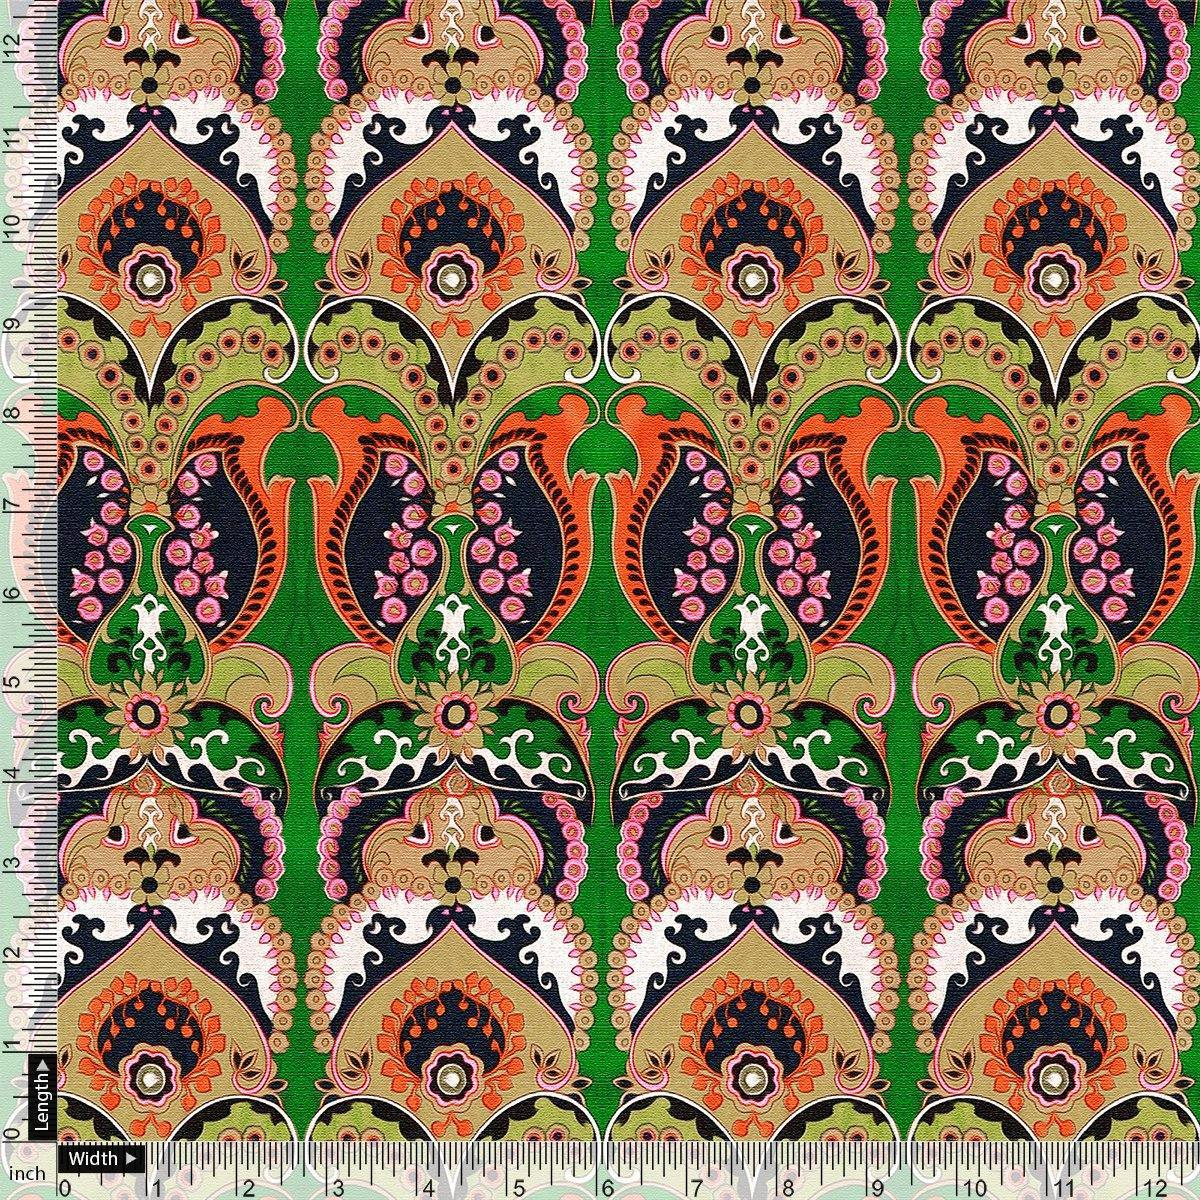 Green Aboriginal Damask Digital Printed Fabric - FAB VOGUE Studio. Shop Fabric @ www.fabvoguestudio.com